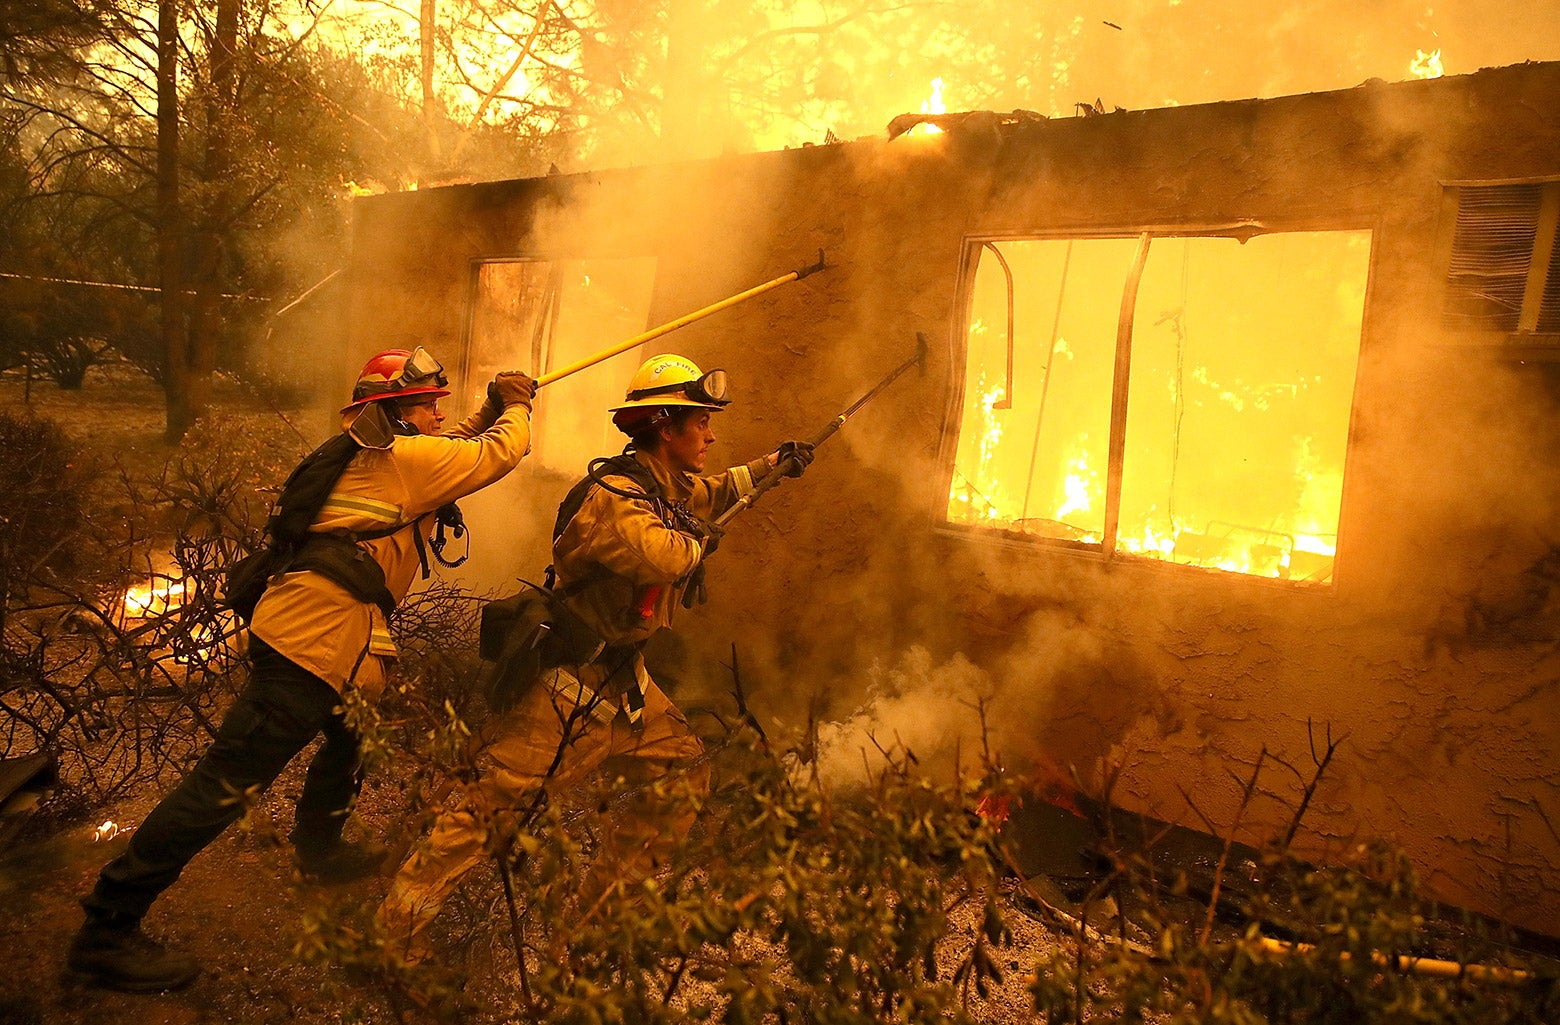 Firefighters try to contain a house on fire in California.